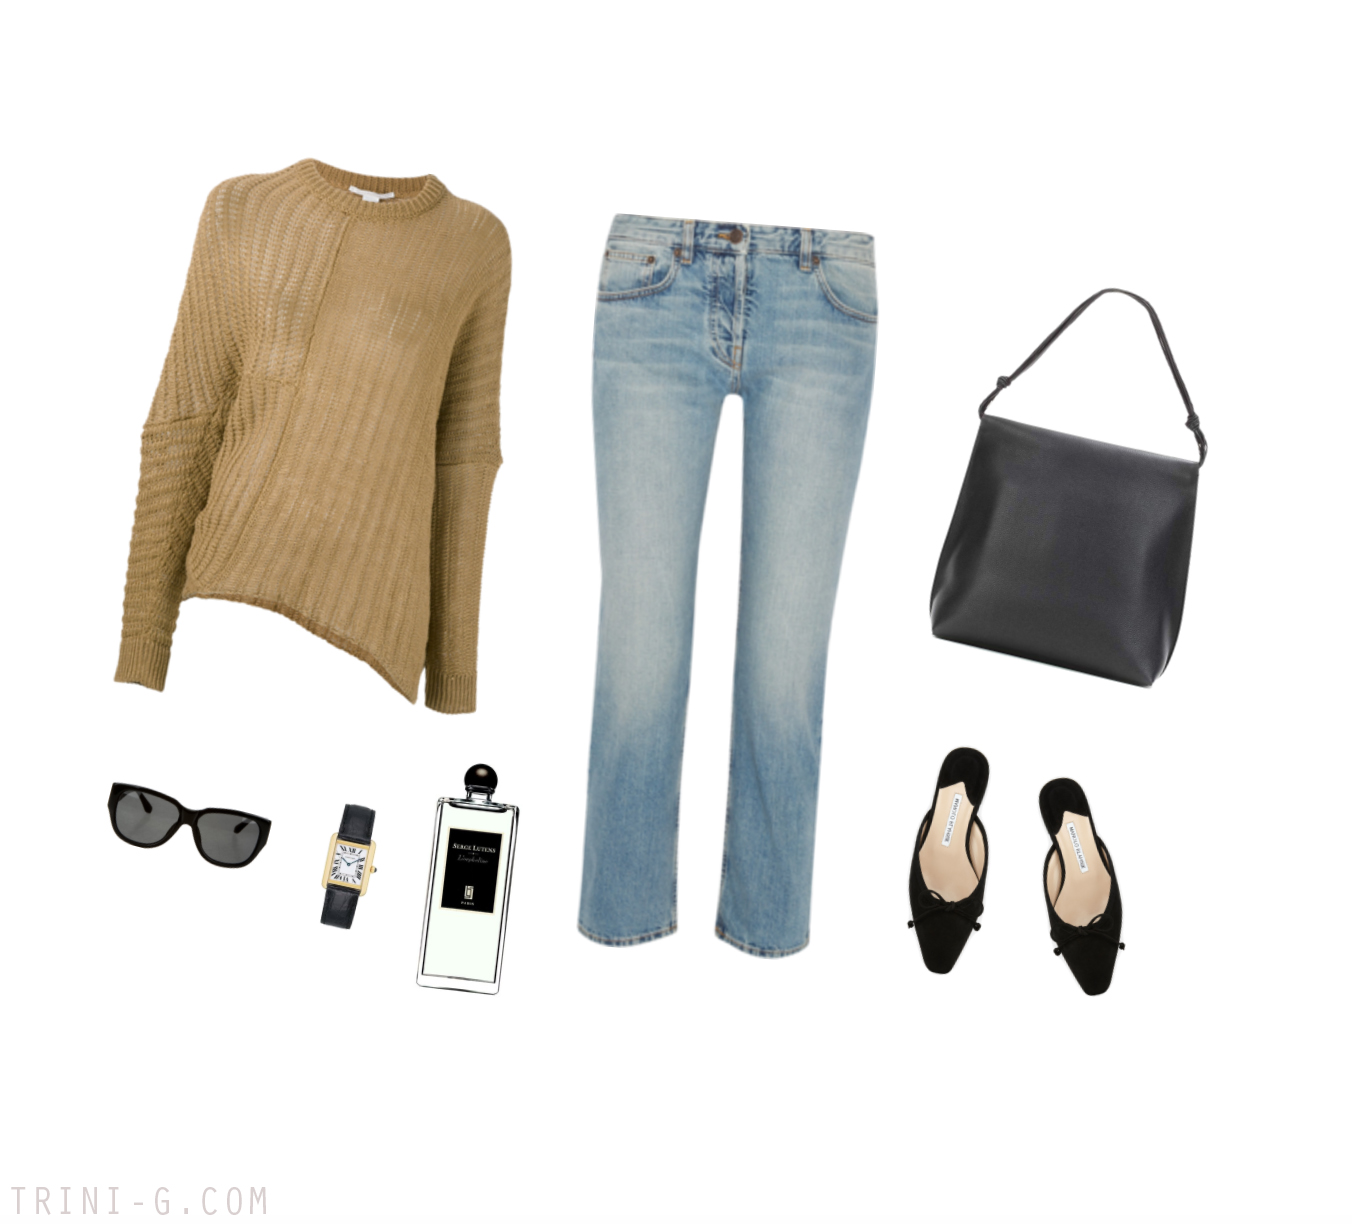 Trini | The Row sweater Manolo Blahnik shoes